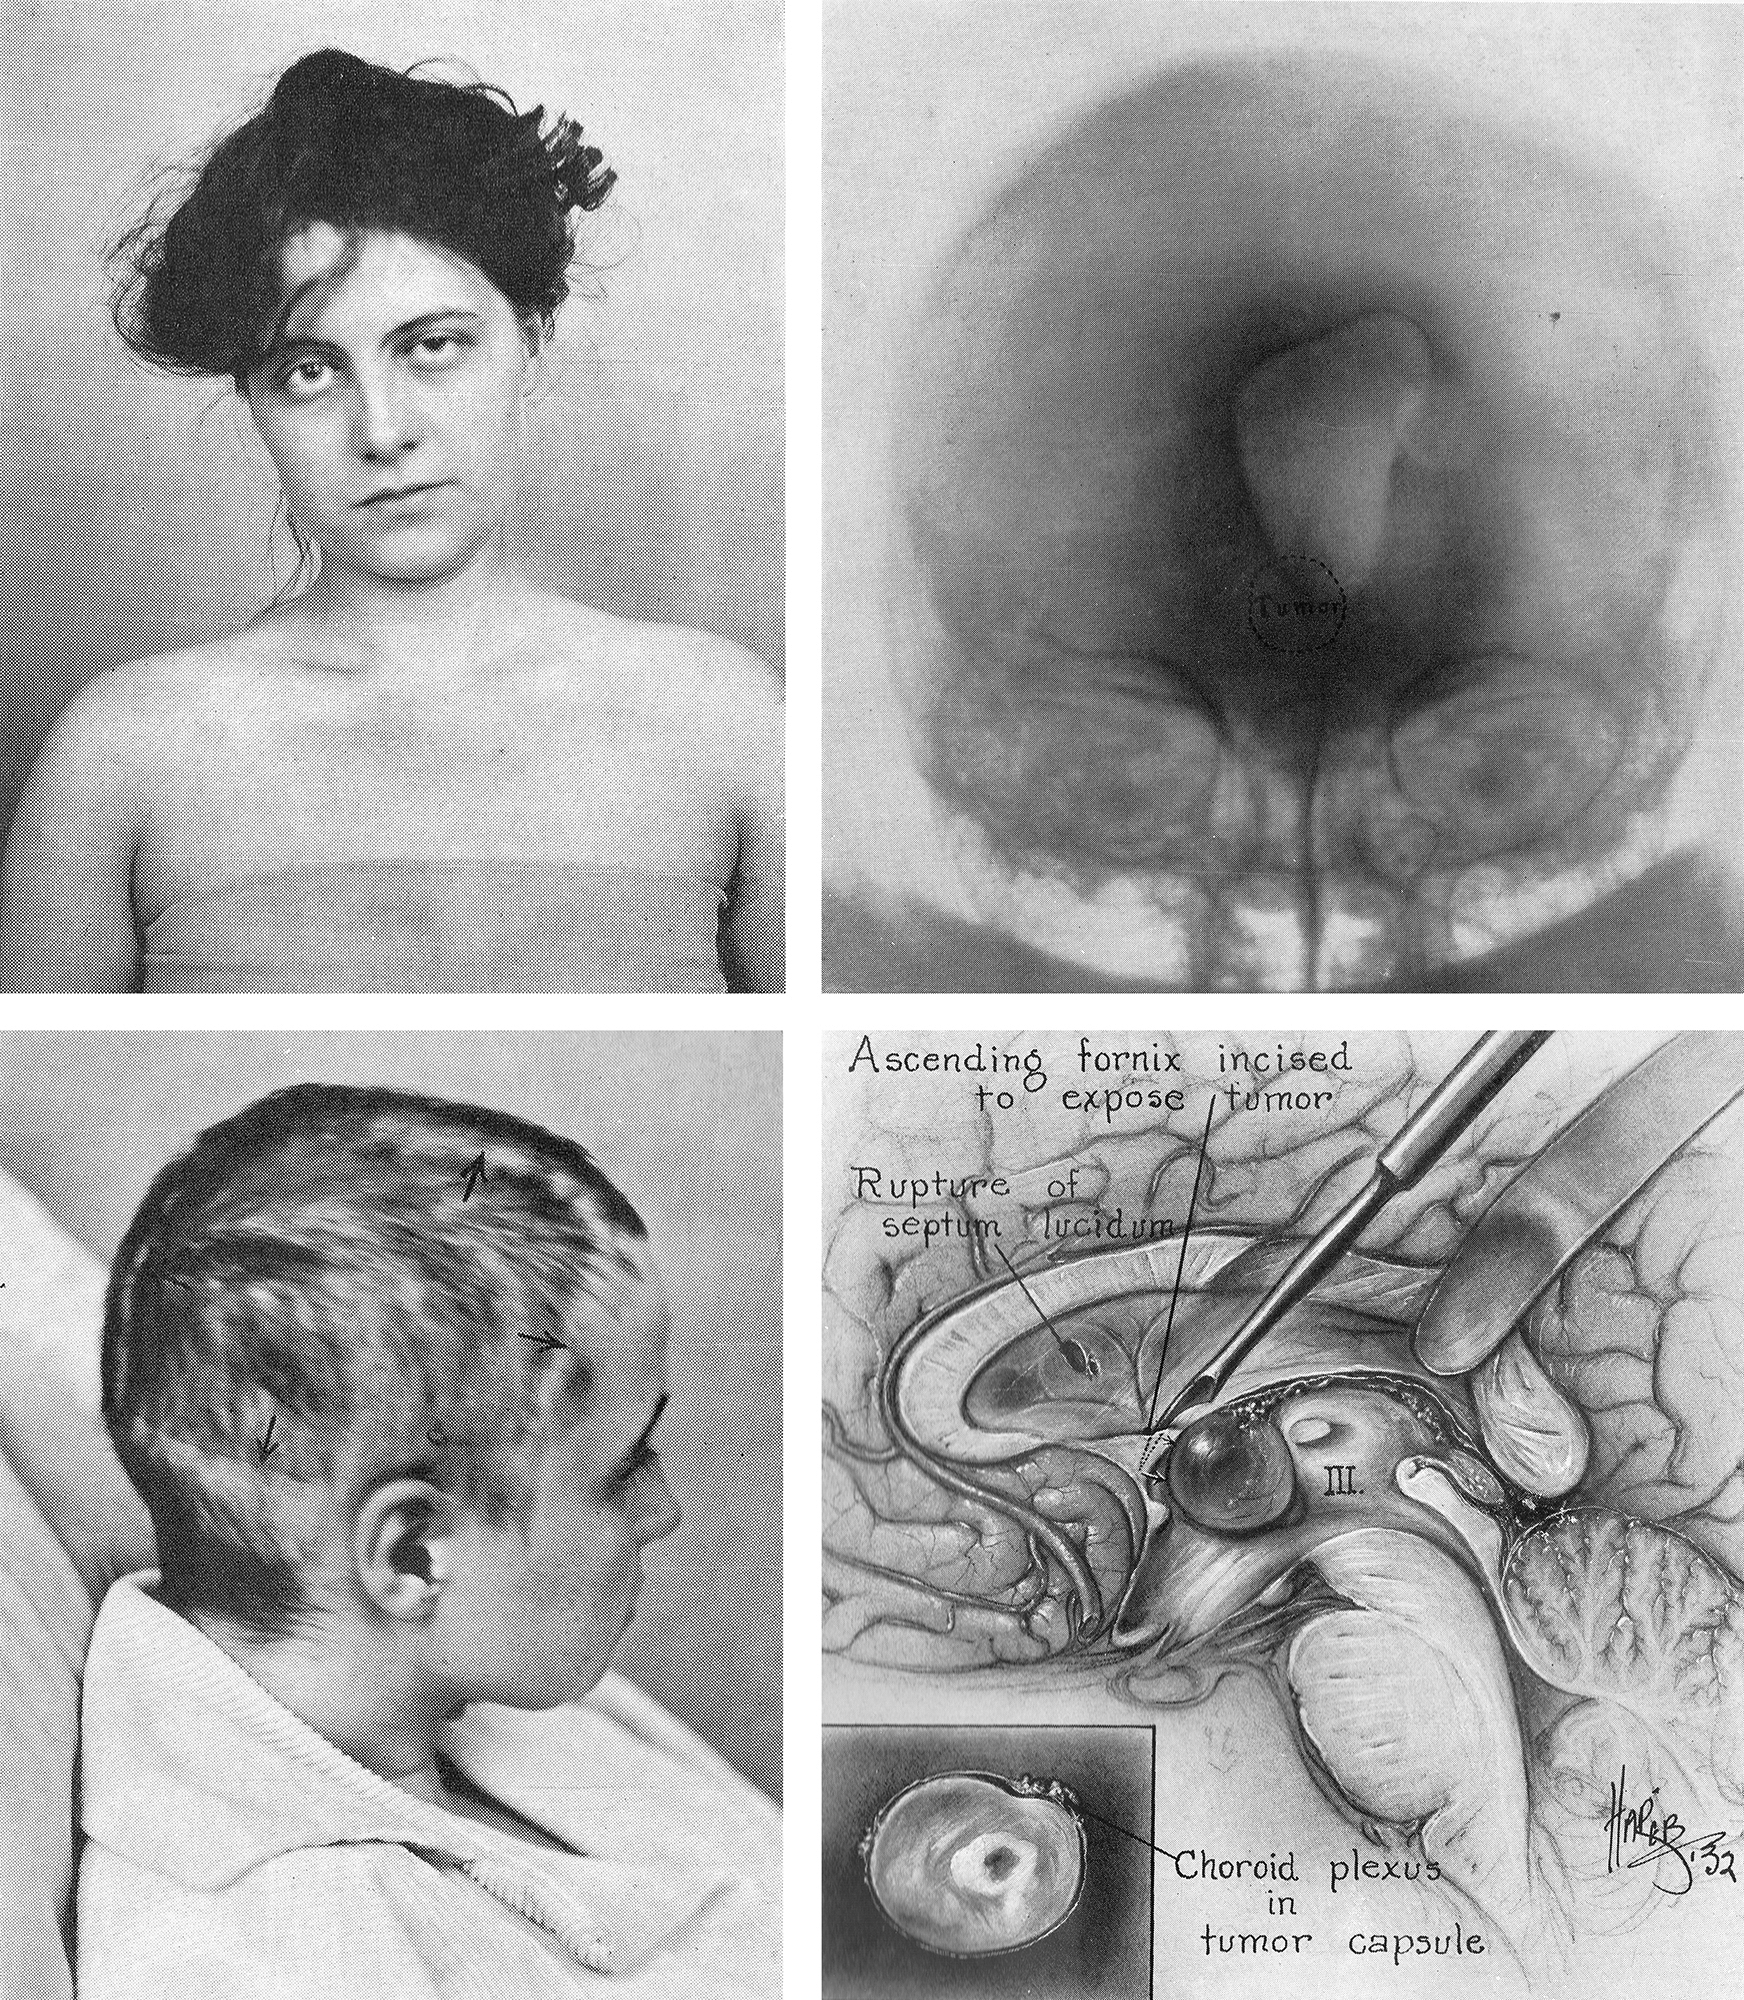 "Figure 1: These images show one of the earliest patients who underwent resection of her colloid cyst by Walter Dandy (left upper). The ventriculogram (right upper image) demonstrated noncommunicating ventriculomegaly. Dandy wrote: ""The tremendous bone flap as indicated by the incision was the pioneer attack upon this tumor"" (left lower image). The illustration (right lower image) details Dandy's technique."